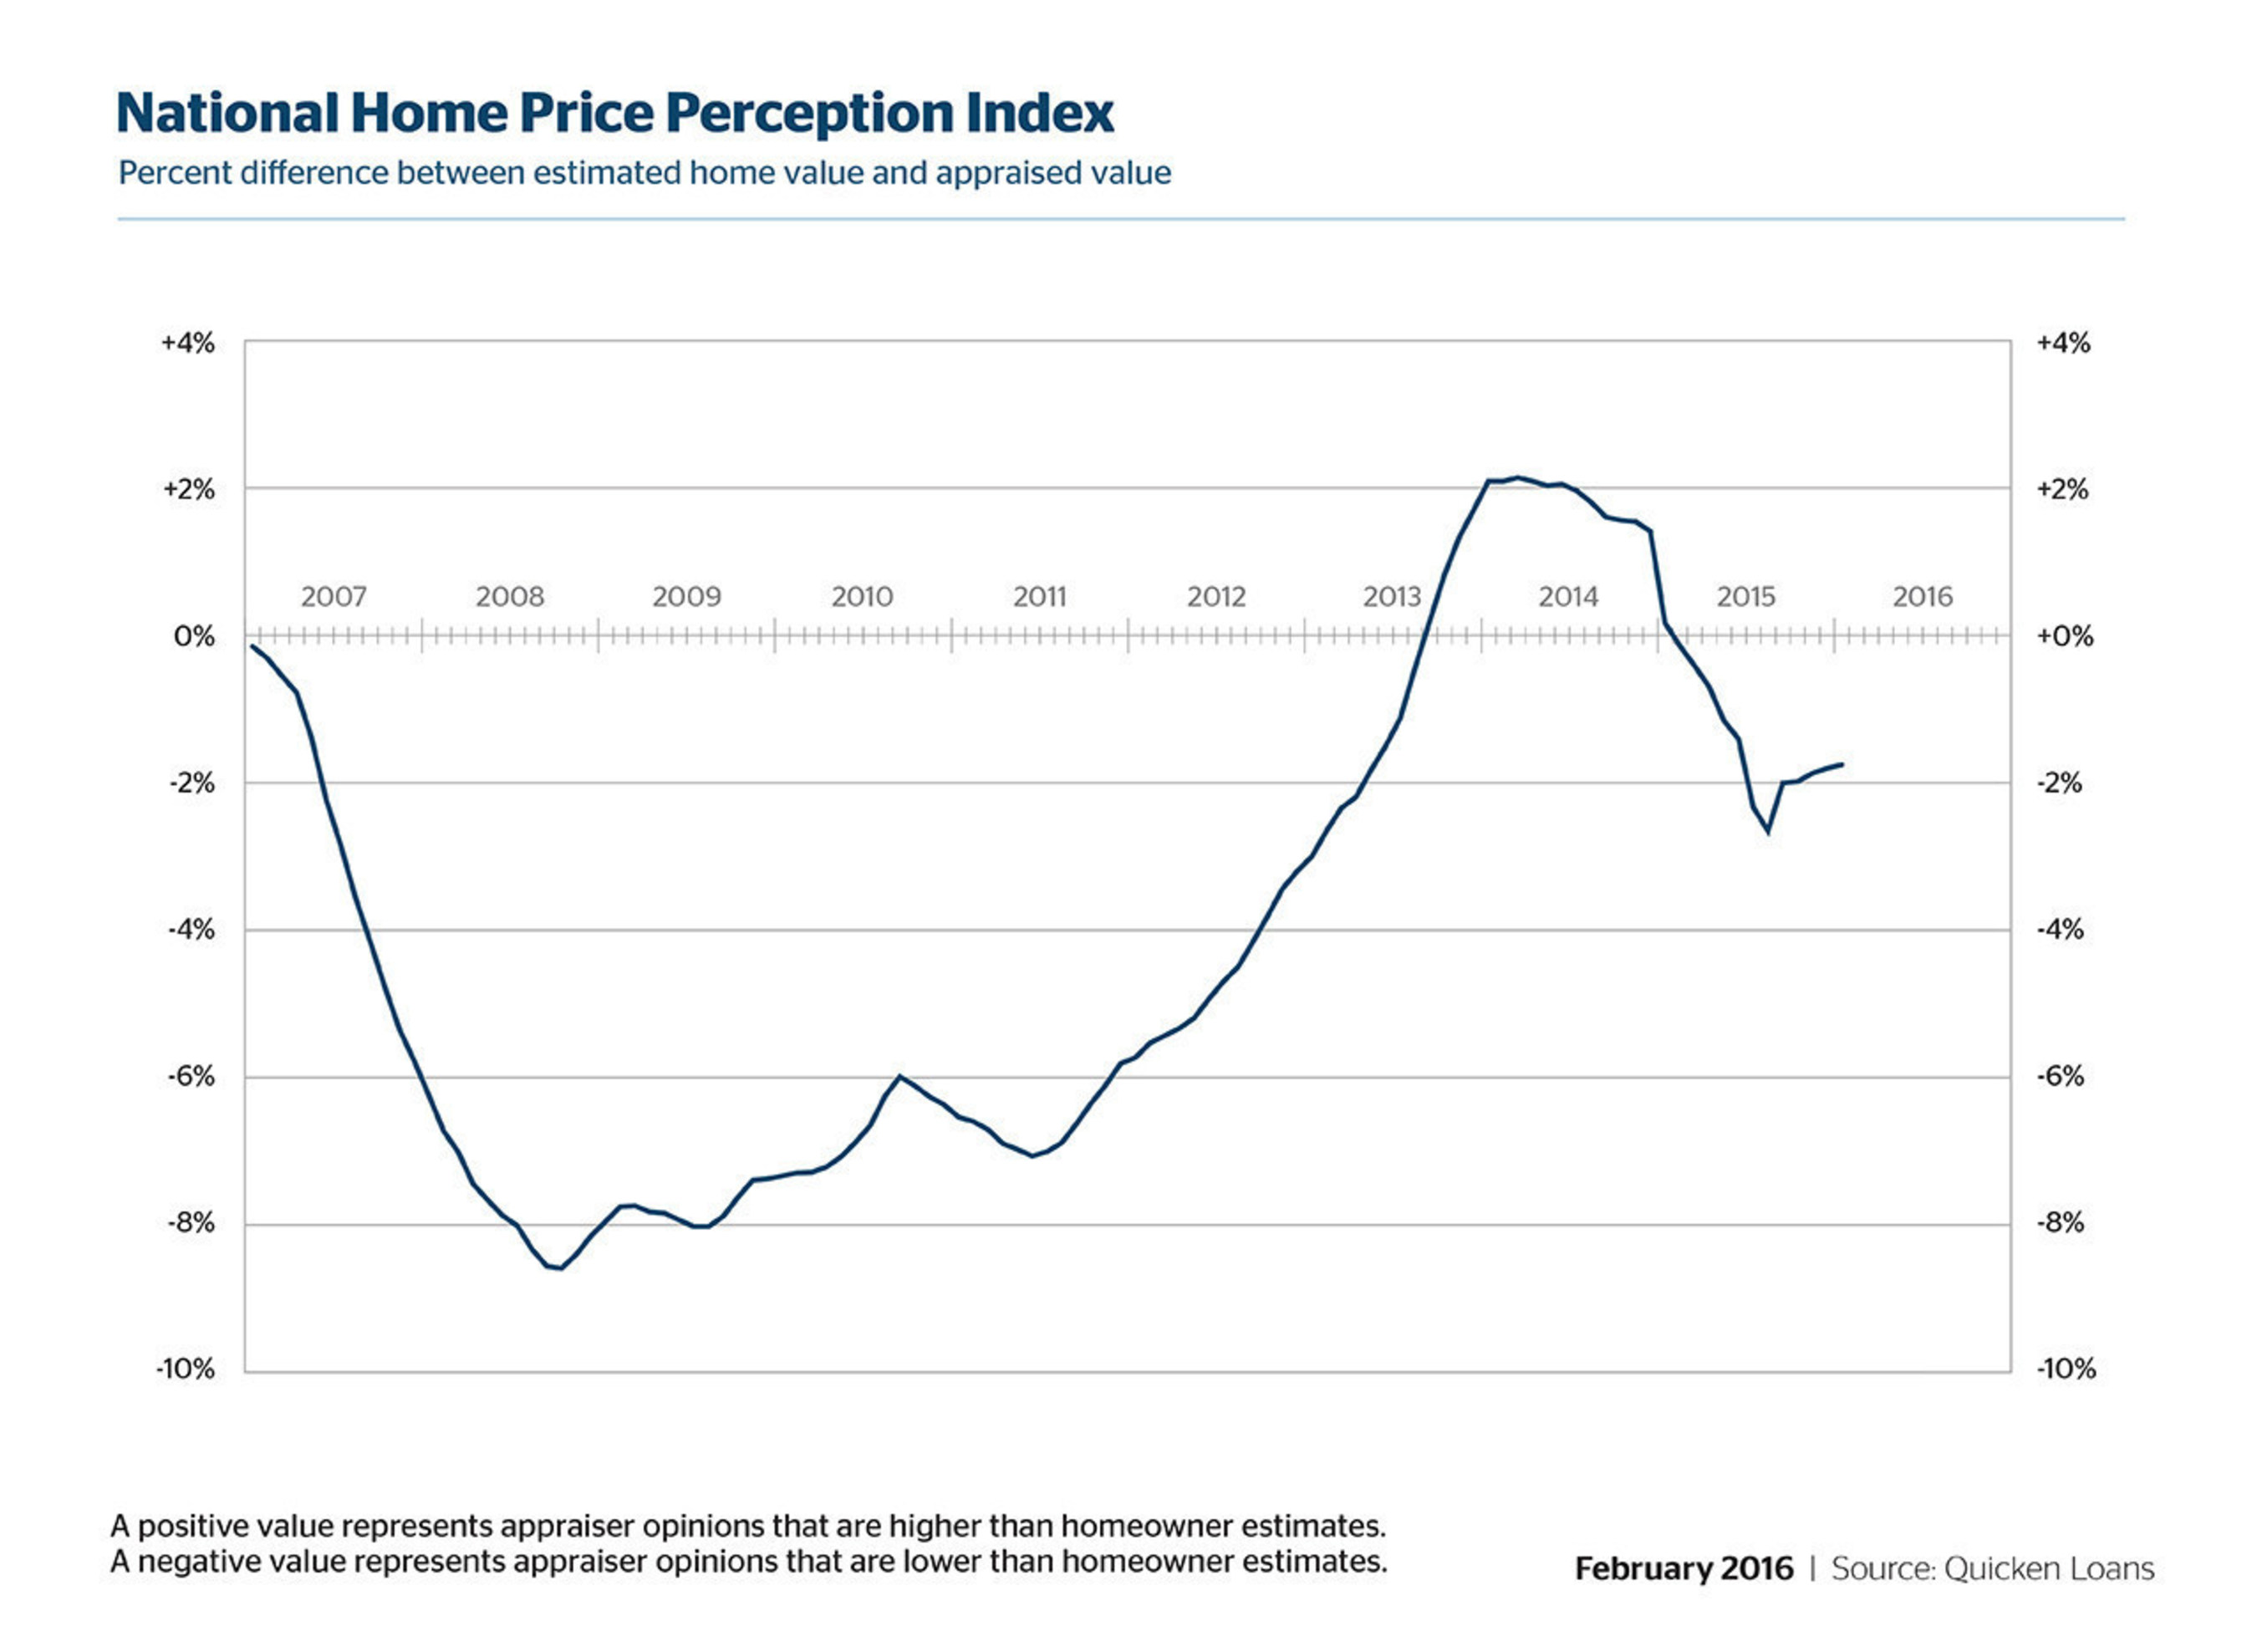 Quicken Loans HPPI: Homeowner expectation of value nearing appraiser valuation